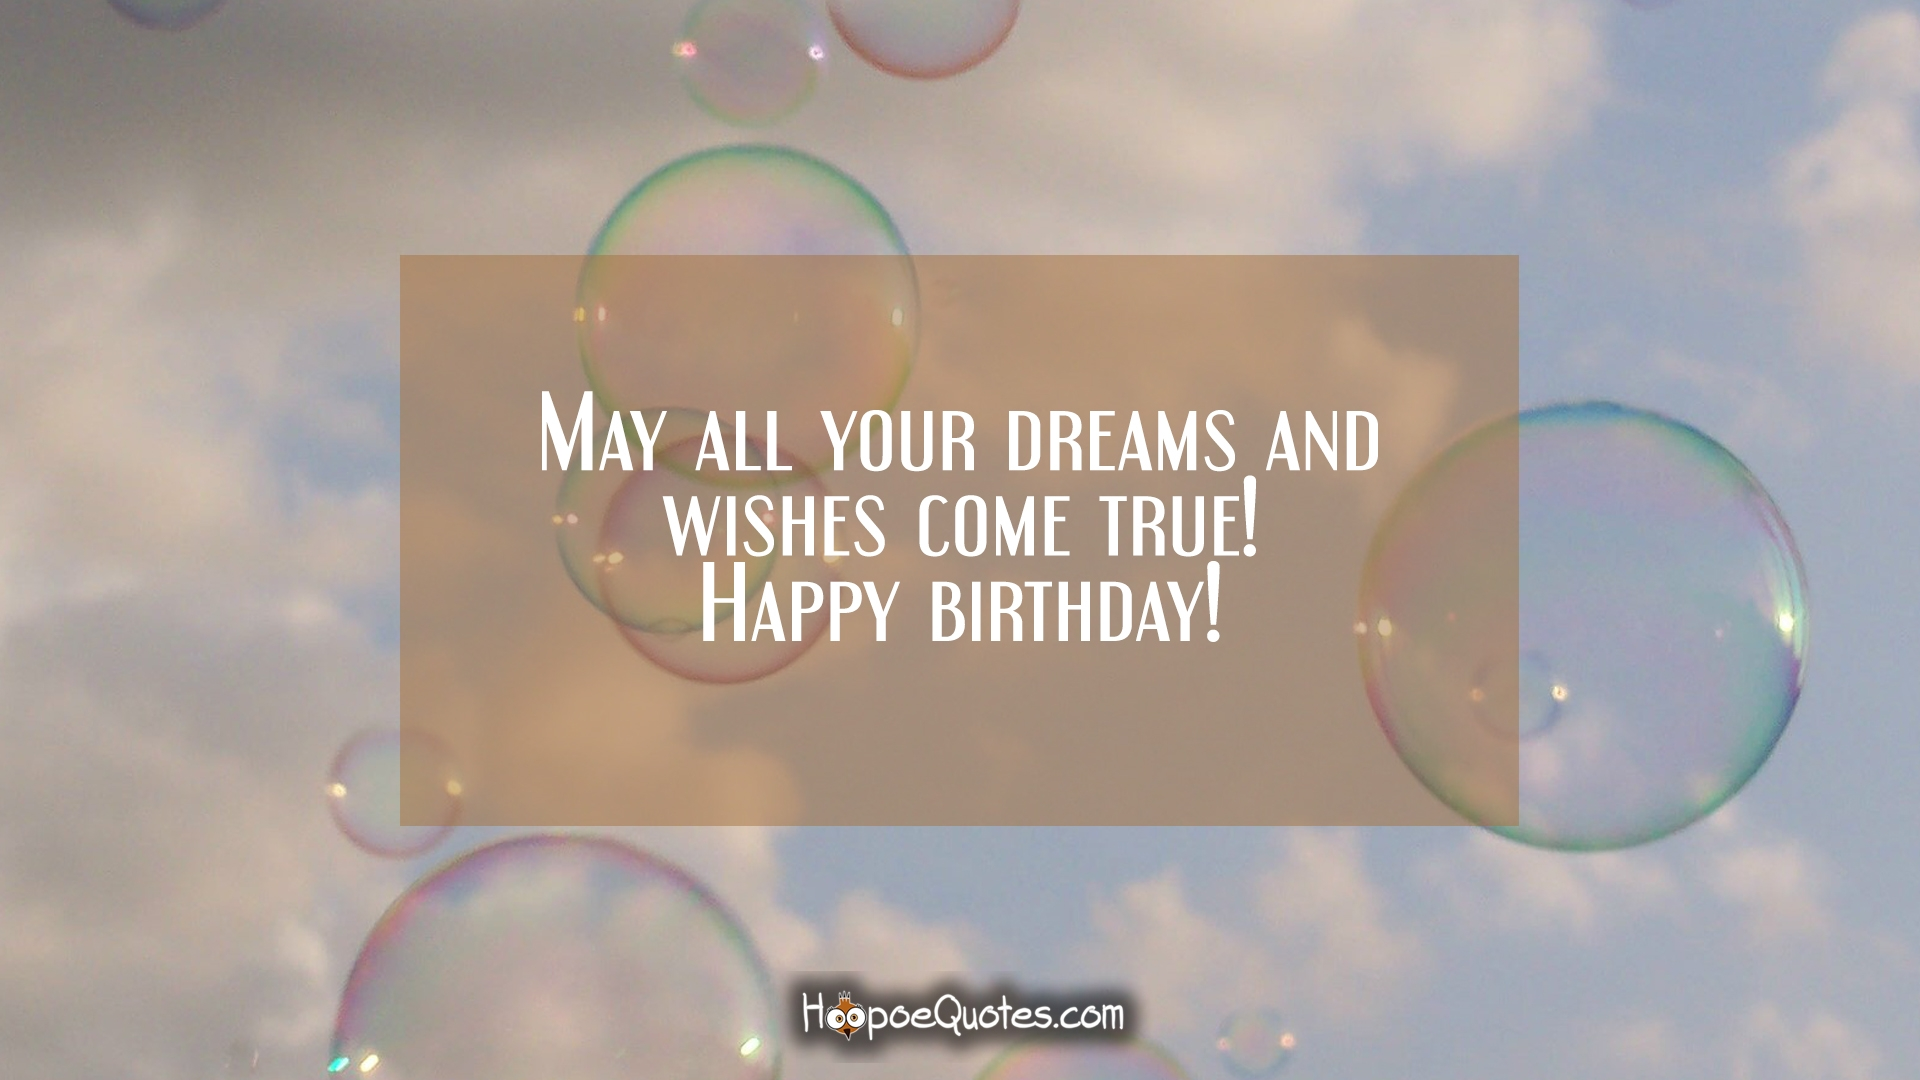 May All Your Dreams And Wishes Come True! Happy Birthday